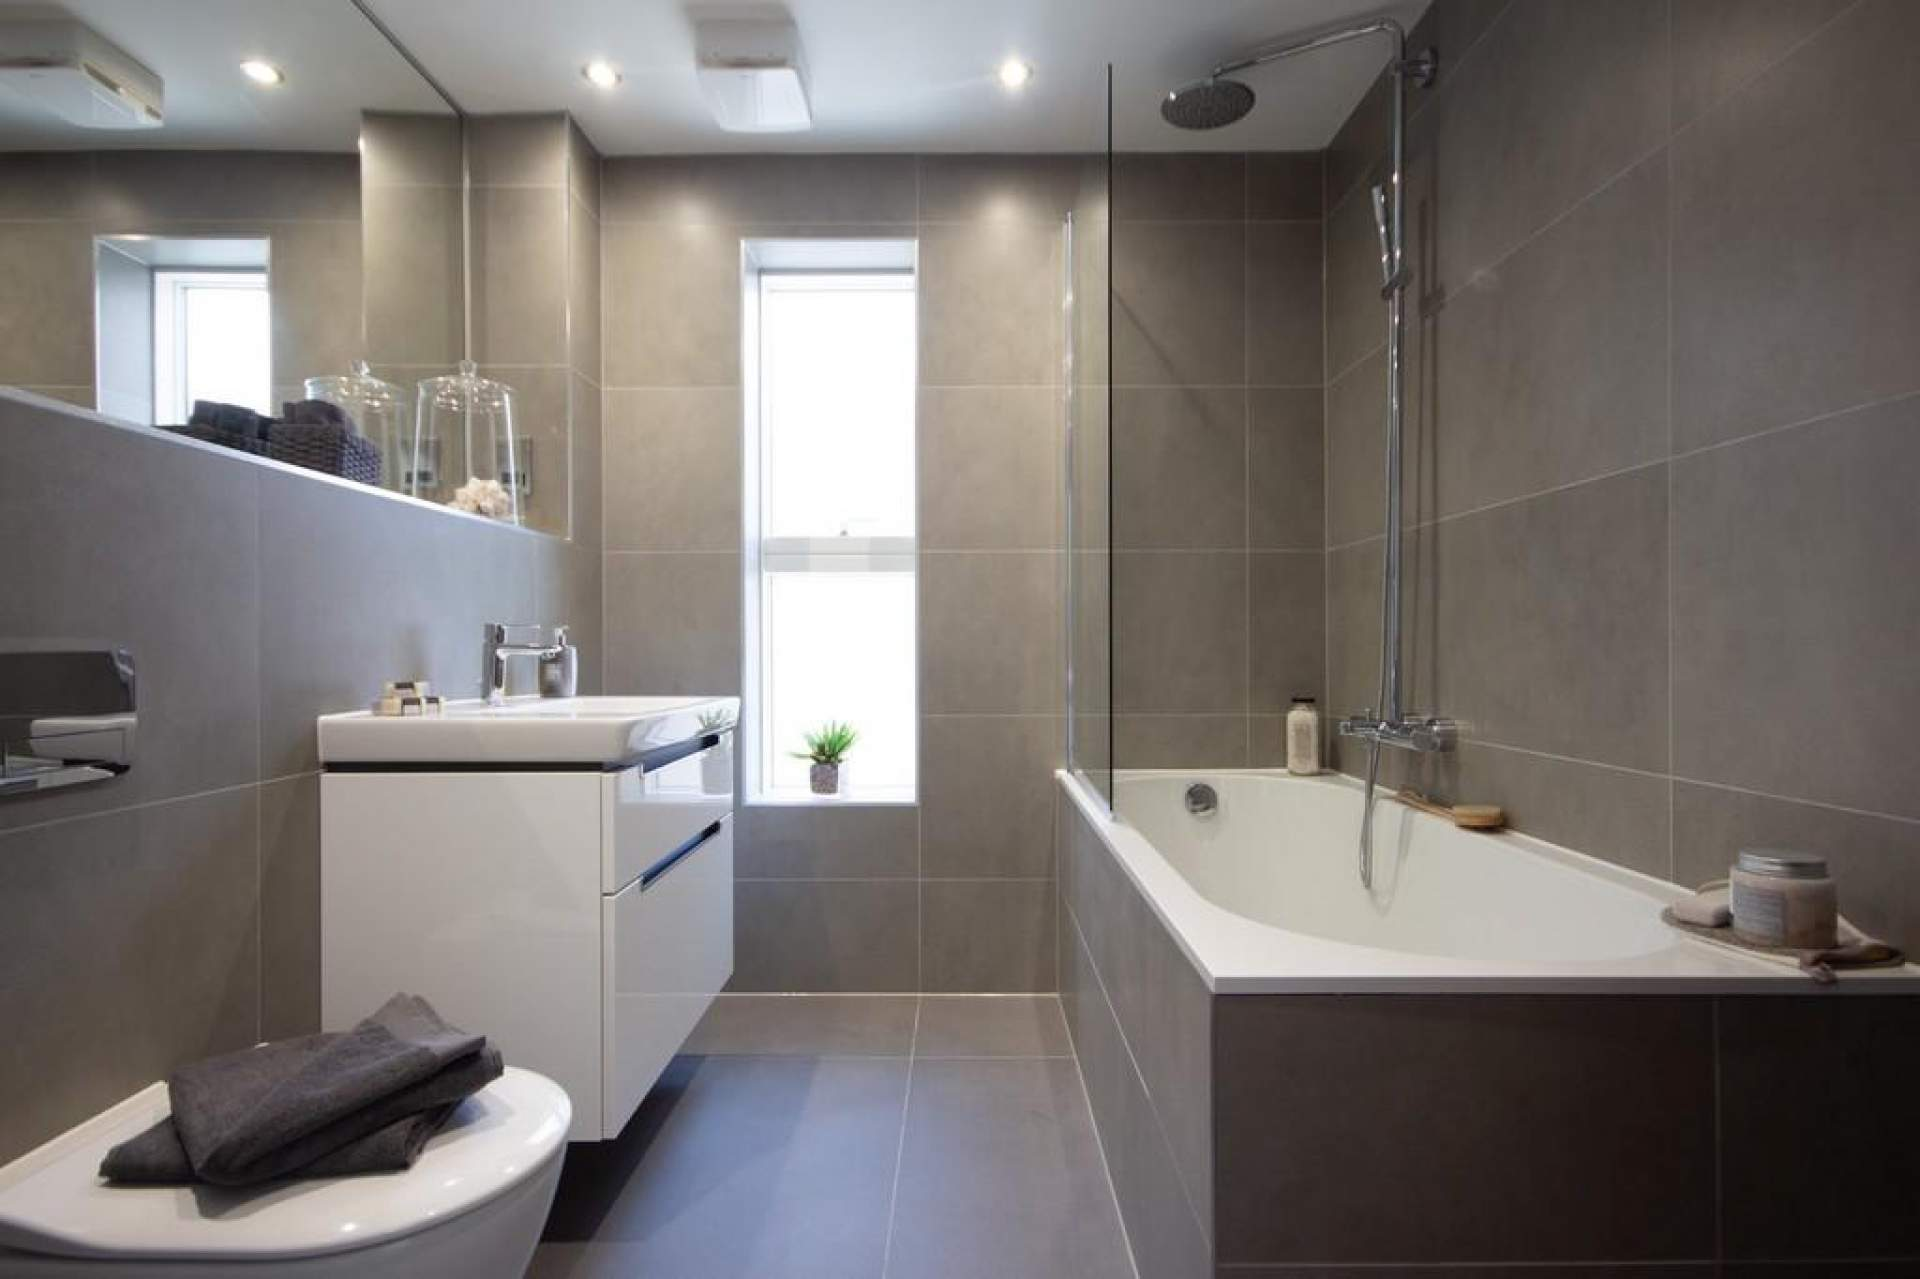 Micro Cement bathroom setting using Grey Tile